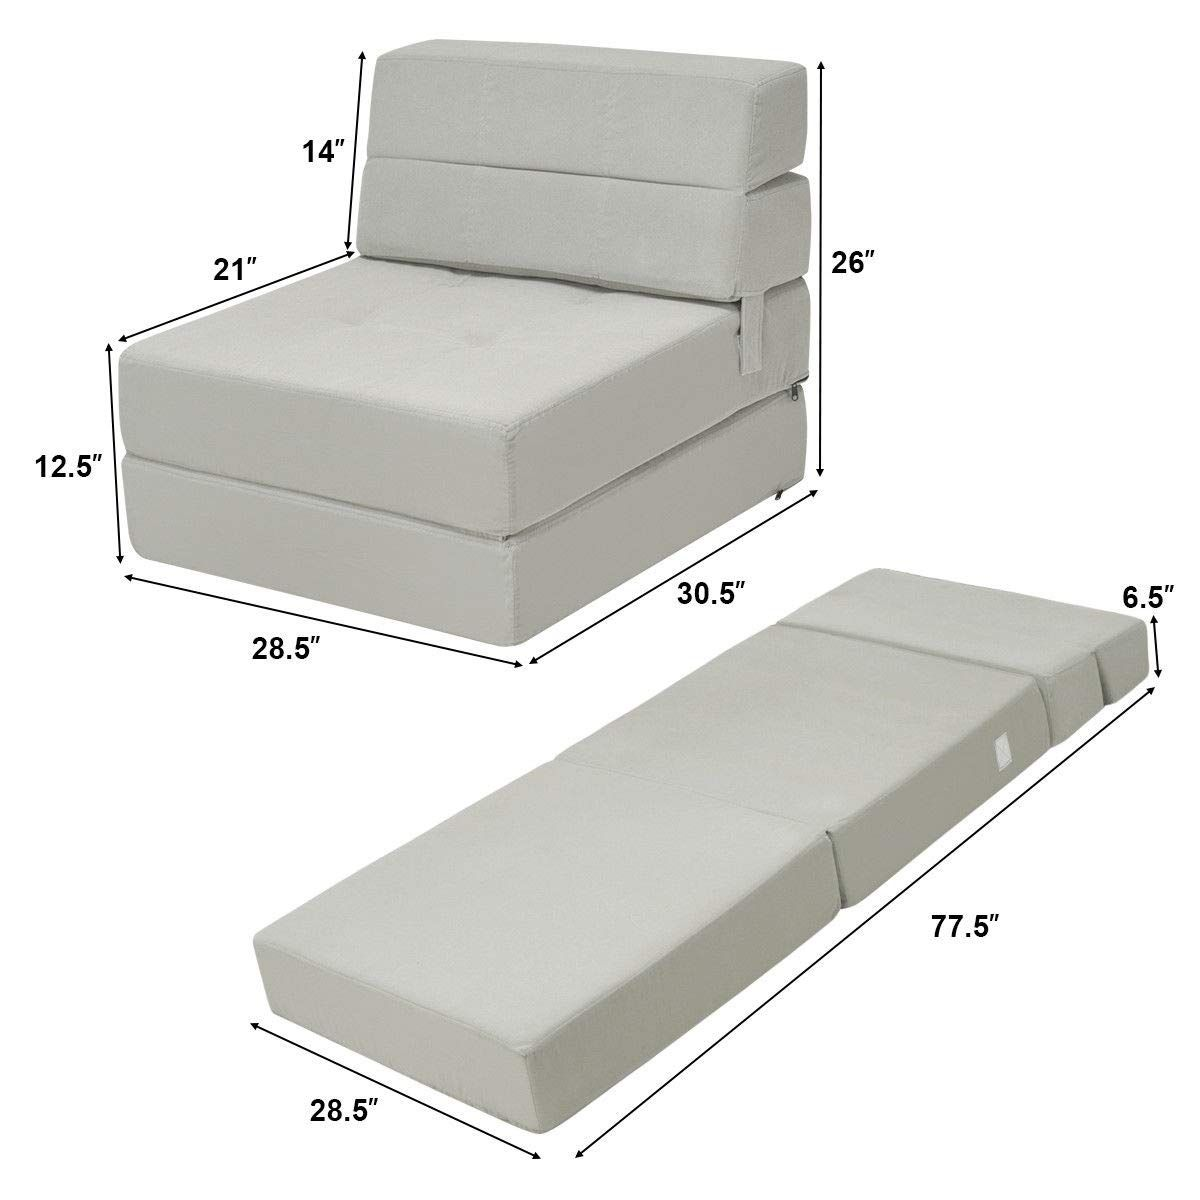 Amazon Com Giantex Fold Down Sofa Bed Floor Couch Foam Folding